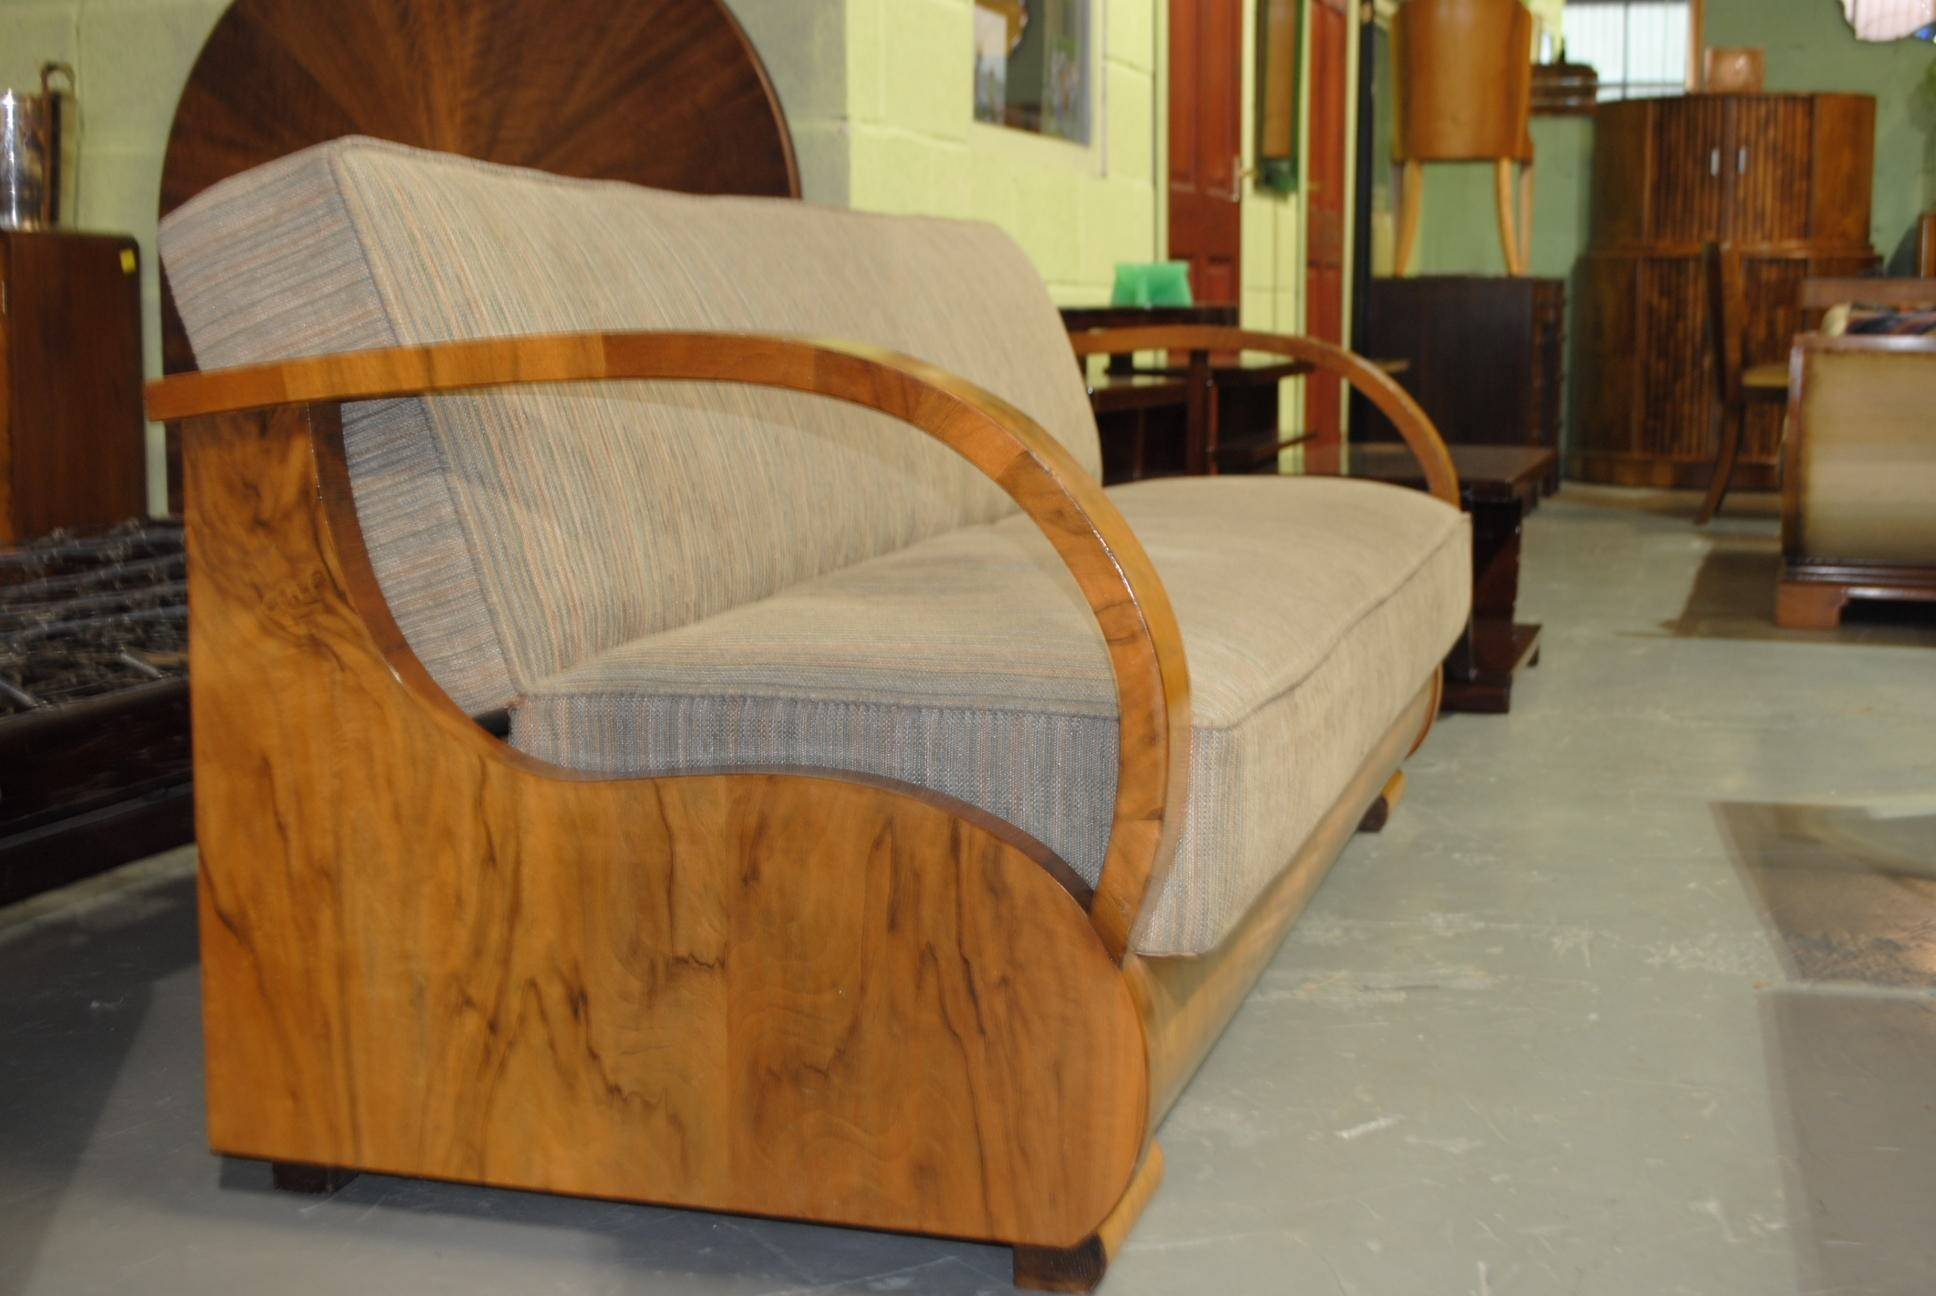 Unusual Sofas ~ Home Decor throughout Unusual Sofas (Image 24 of 25)